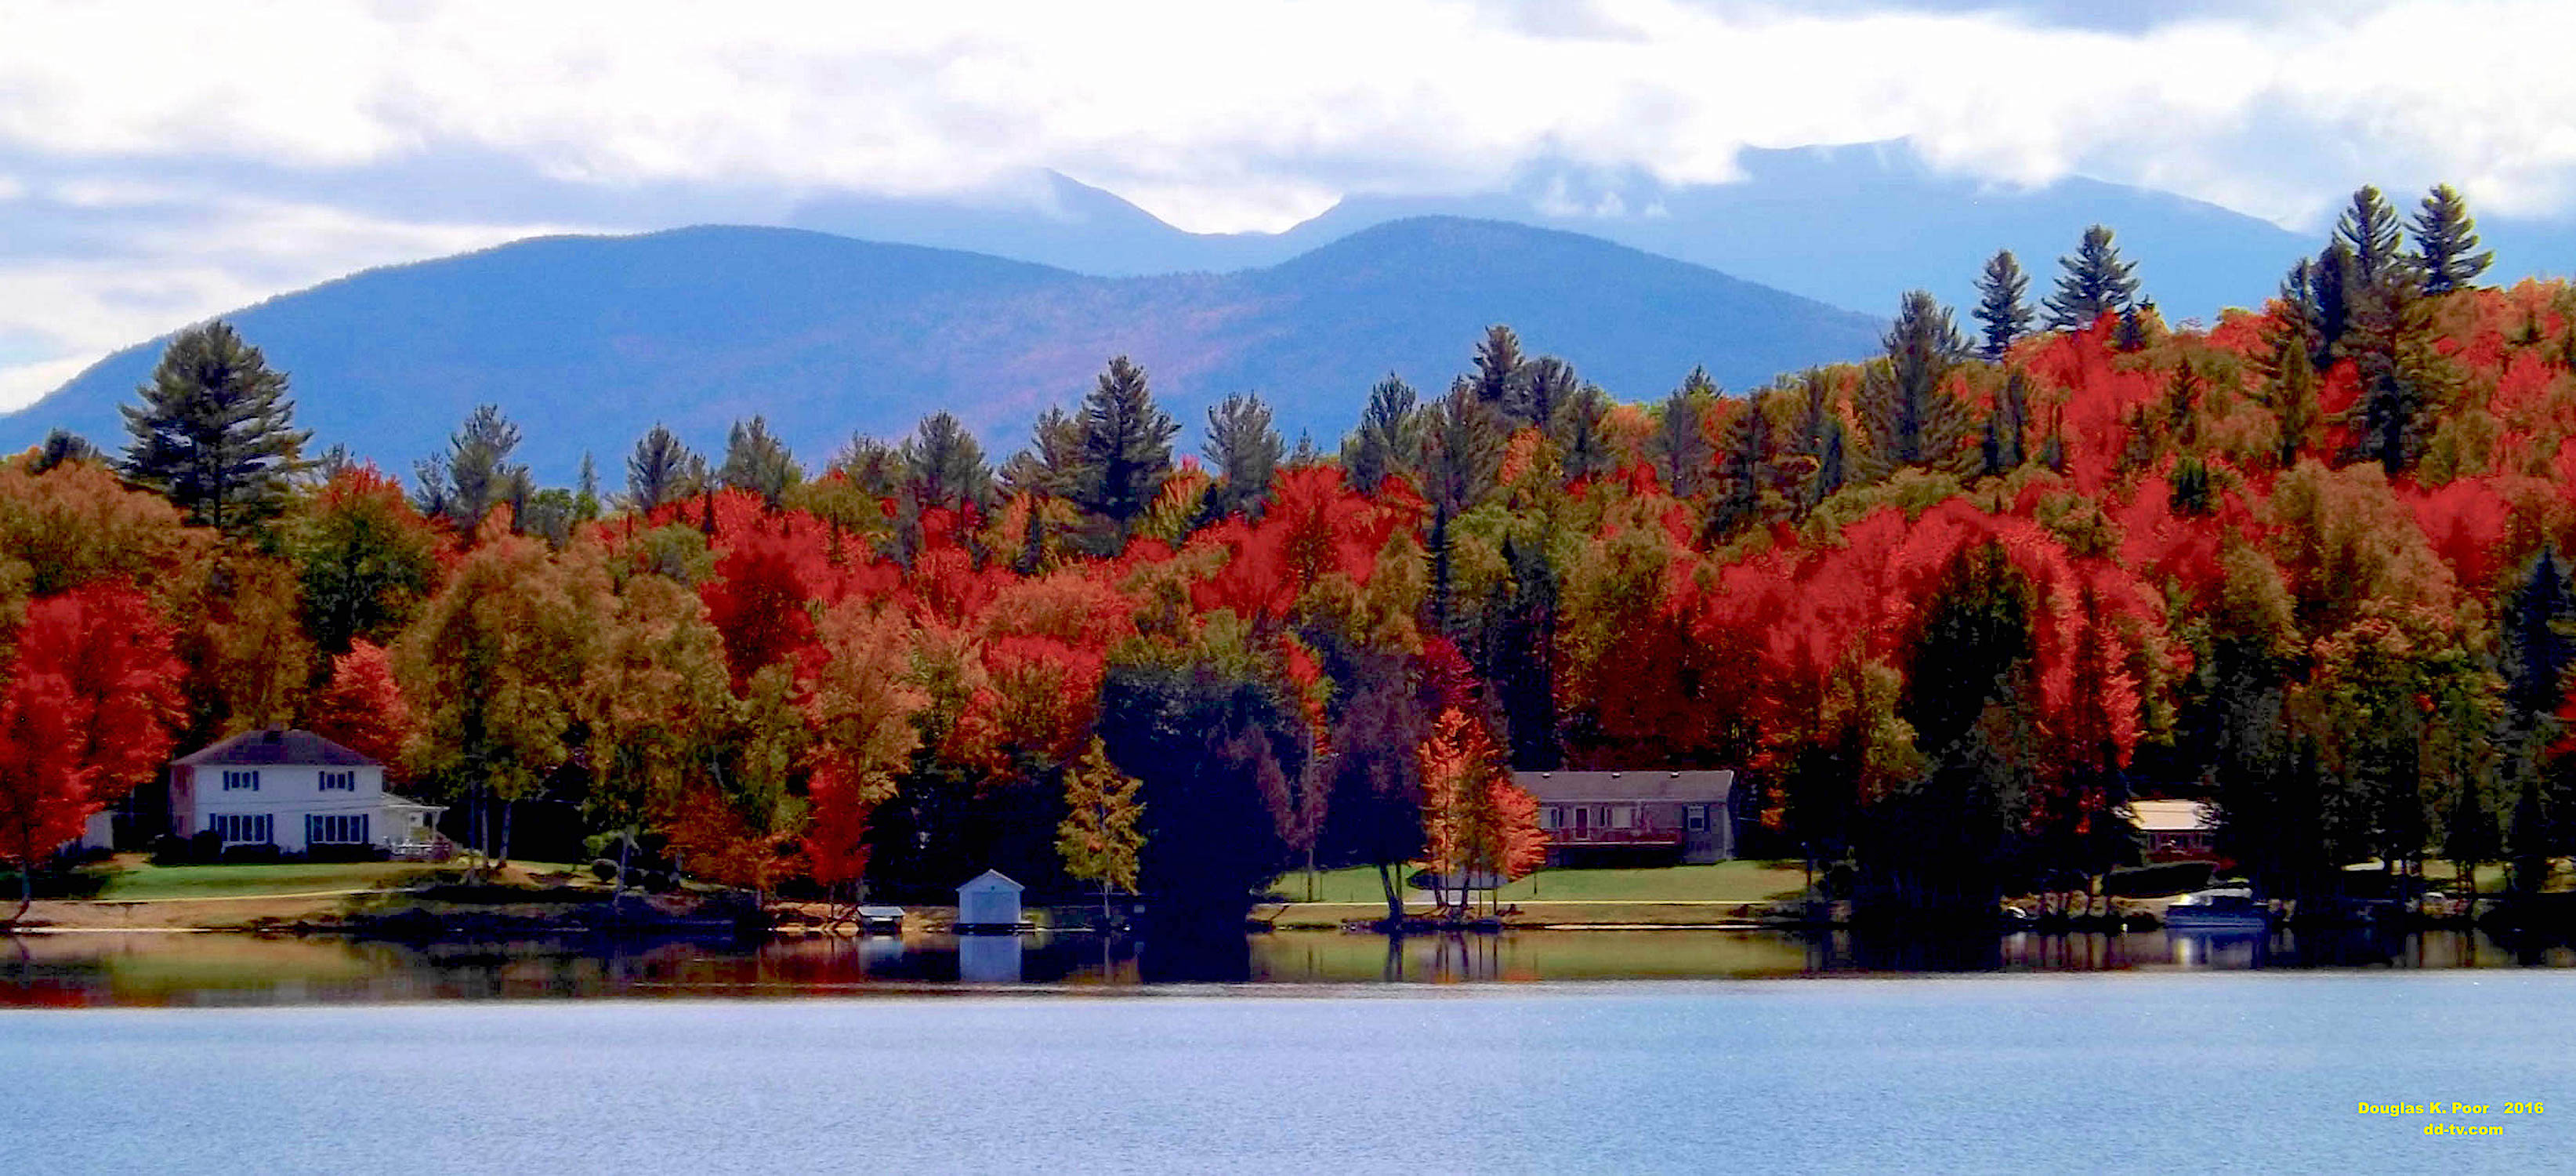 ===================-POND-FOLIAGE-MTNS-10-16-smaller-size========================================================================================================================-POND-FOLIAGE-MTNS-10-16-smaller-size